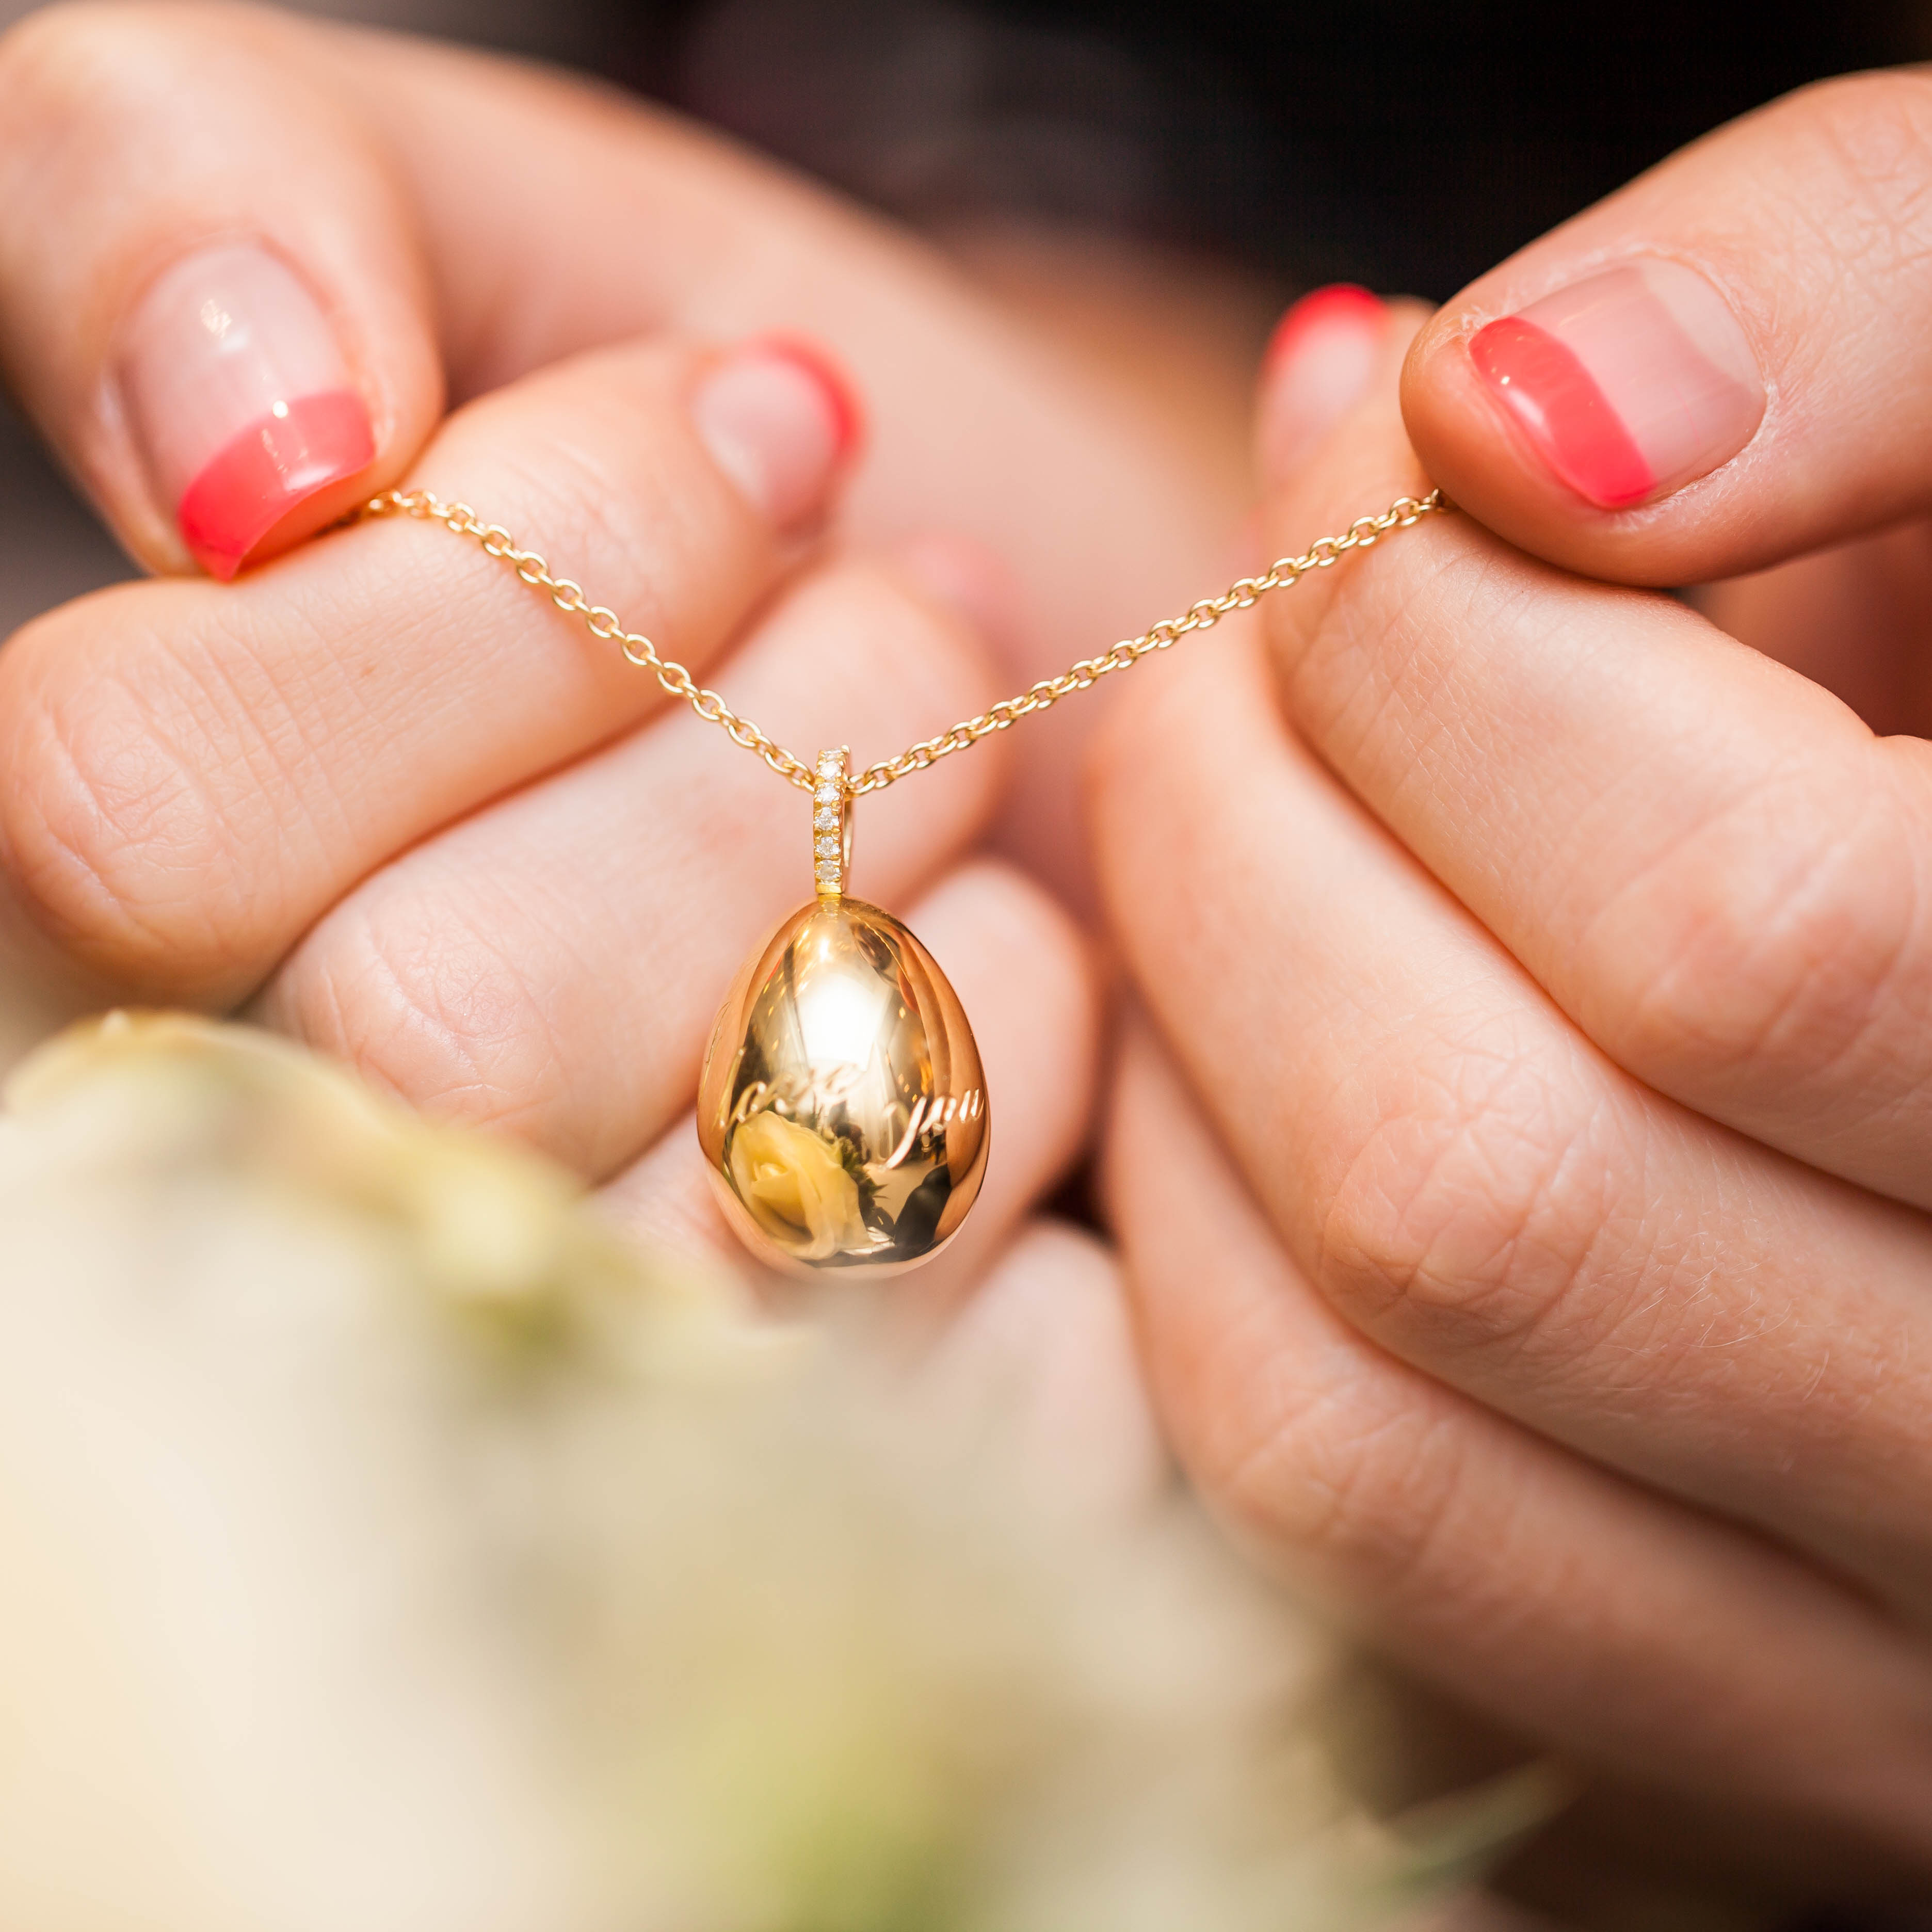 FABERGE GOLD EGG PENDANT REVIEW